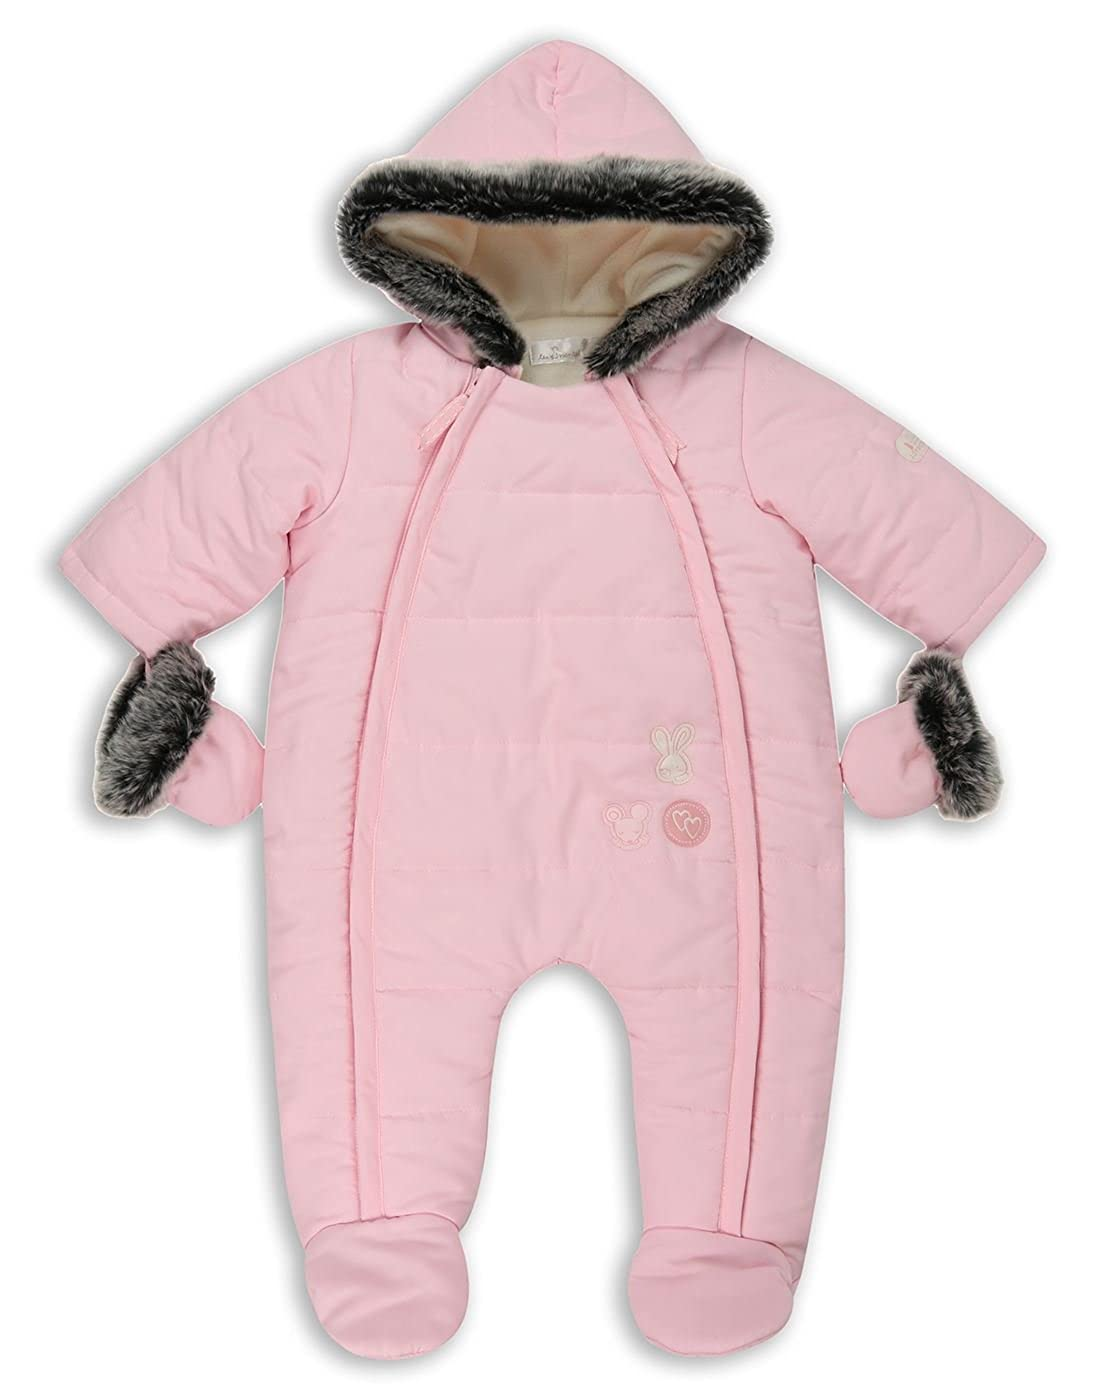 The Essential One - Baby Girls Fur Trimmed Pramsuit/Snowsuit - Pink - EO251